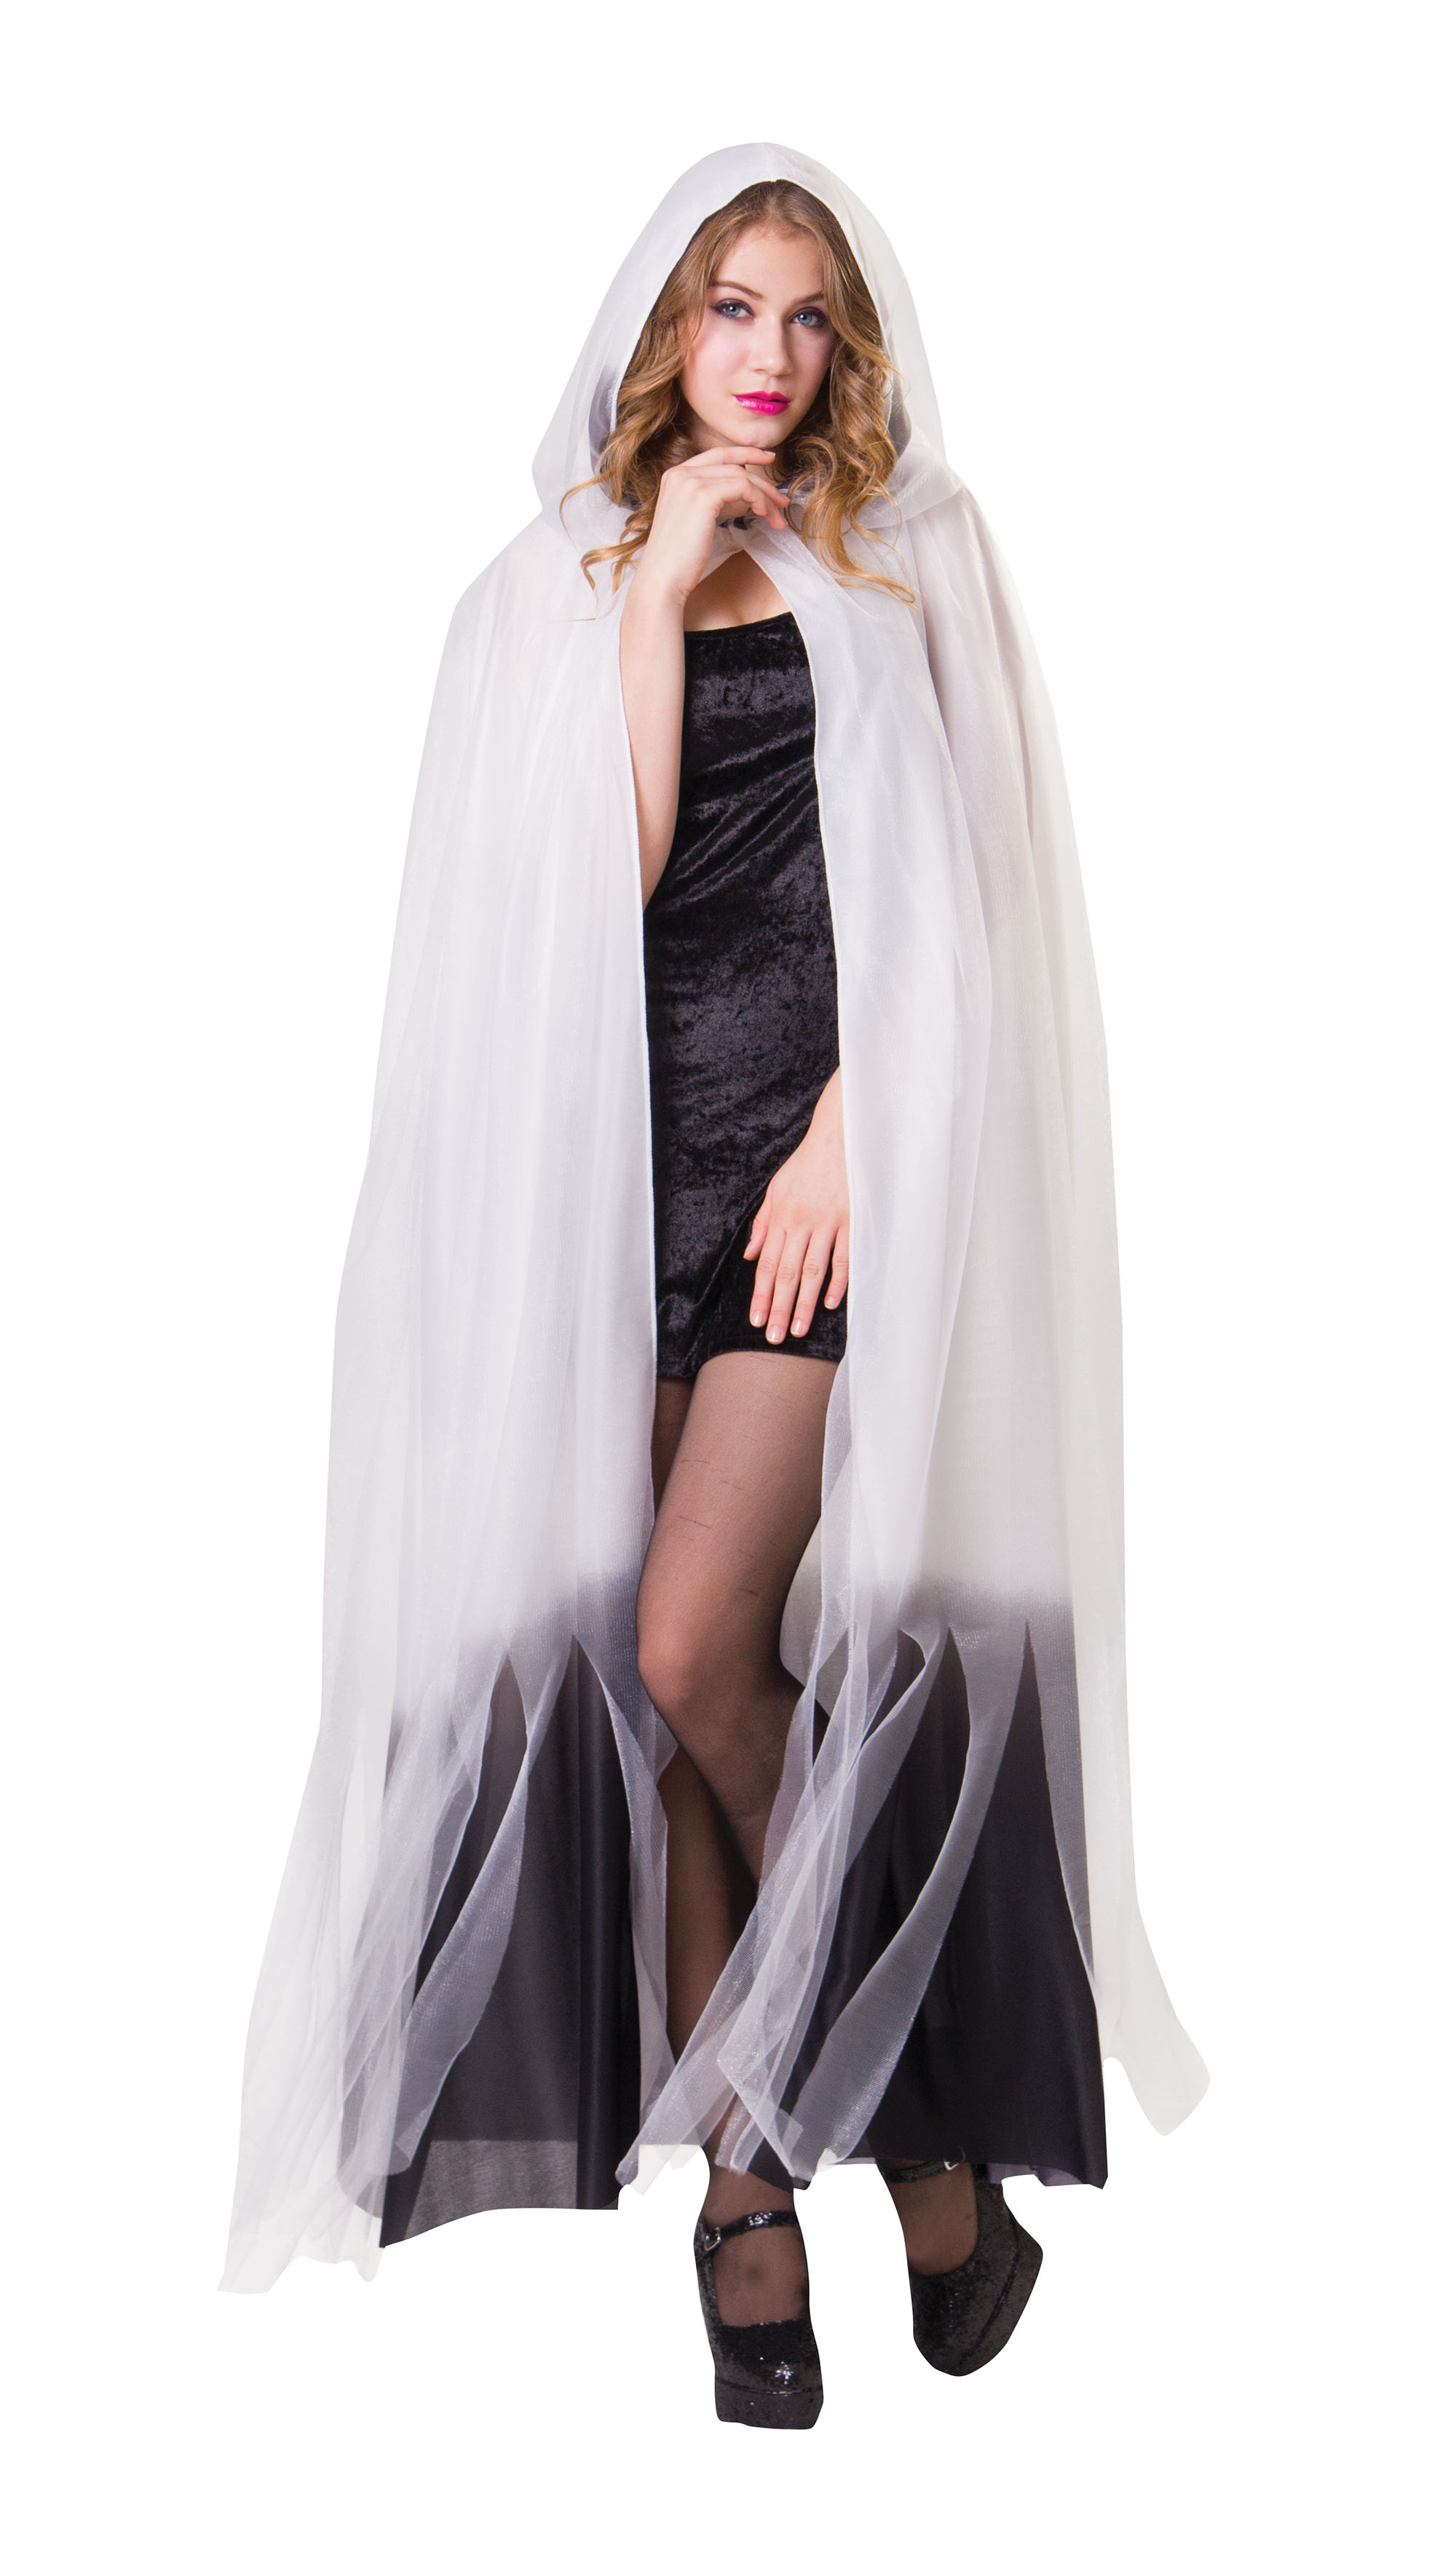 Ladies Womens White Hooded Cape Cloak With Black Finish Halloween Fancy Dress